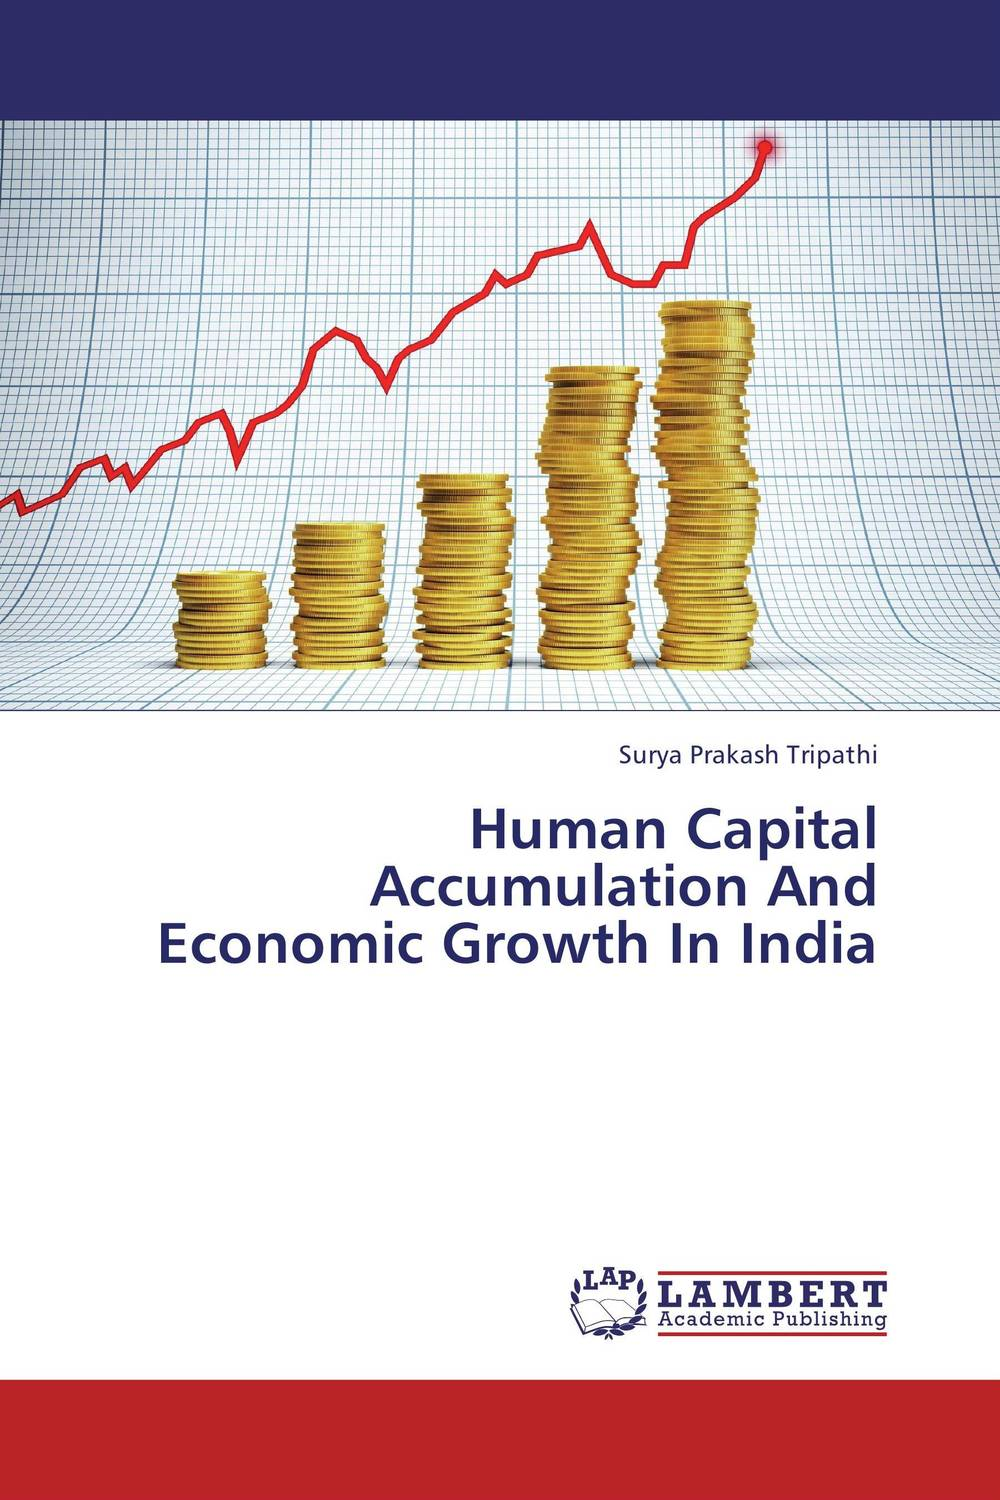 Human Capital Accumulation And Economic Growth In India